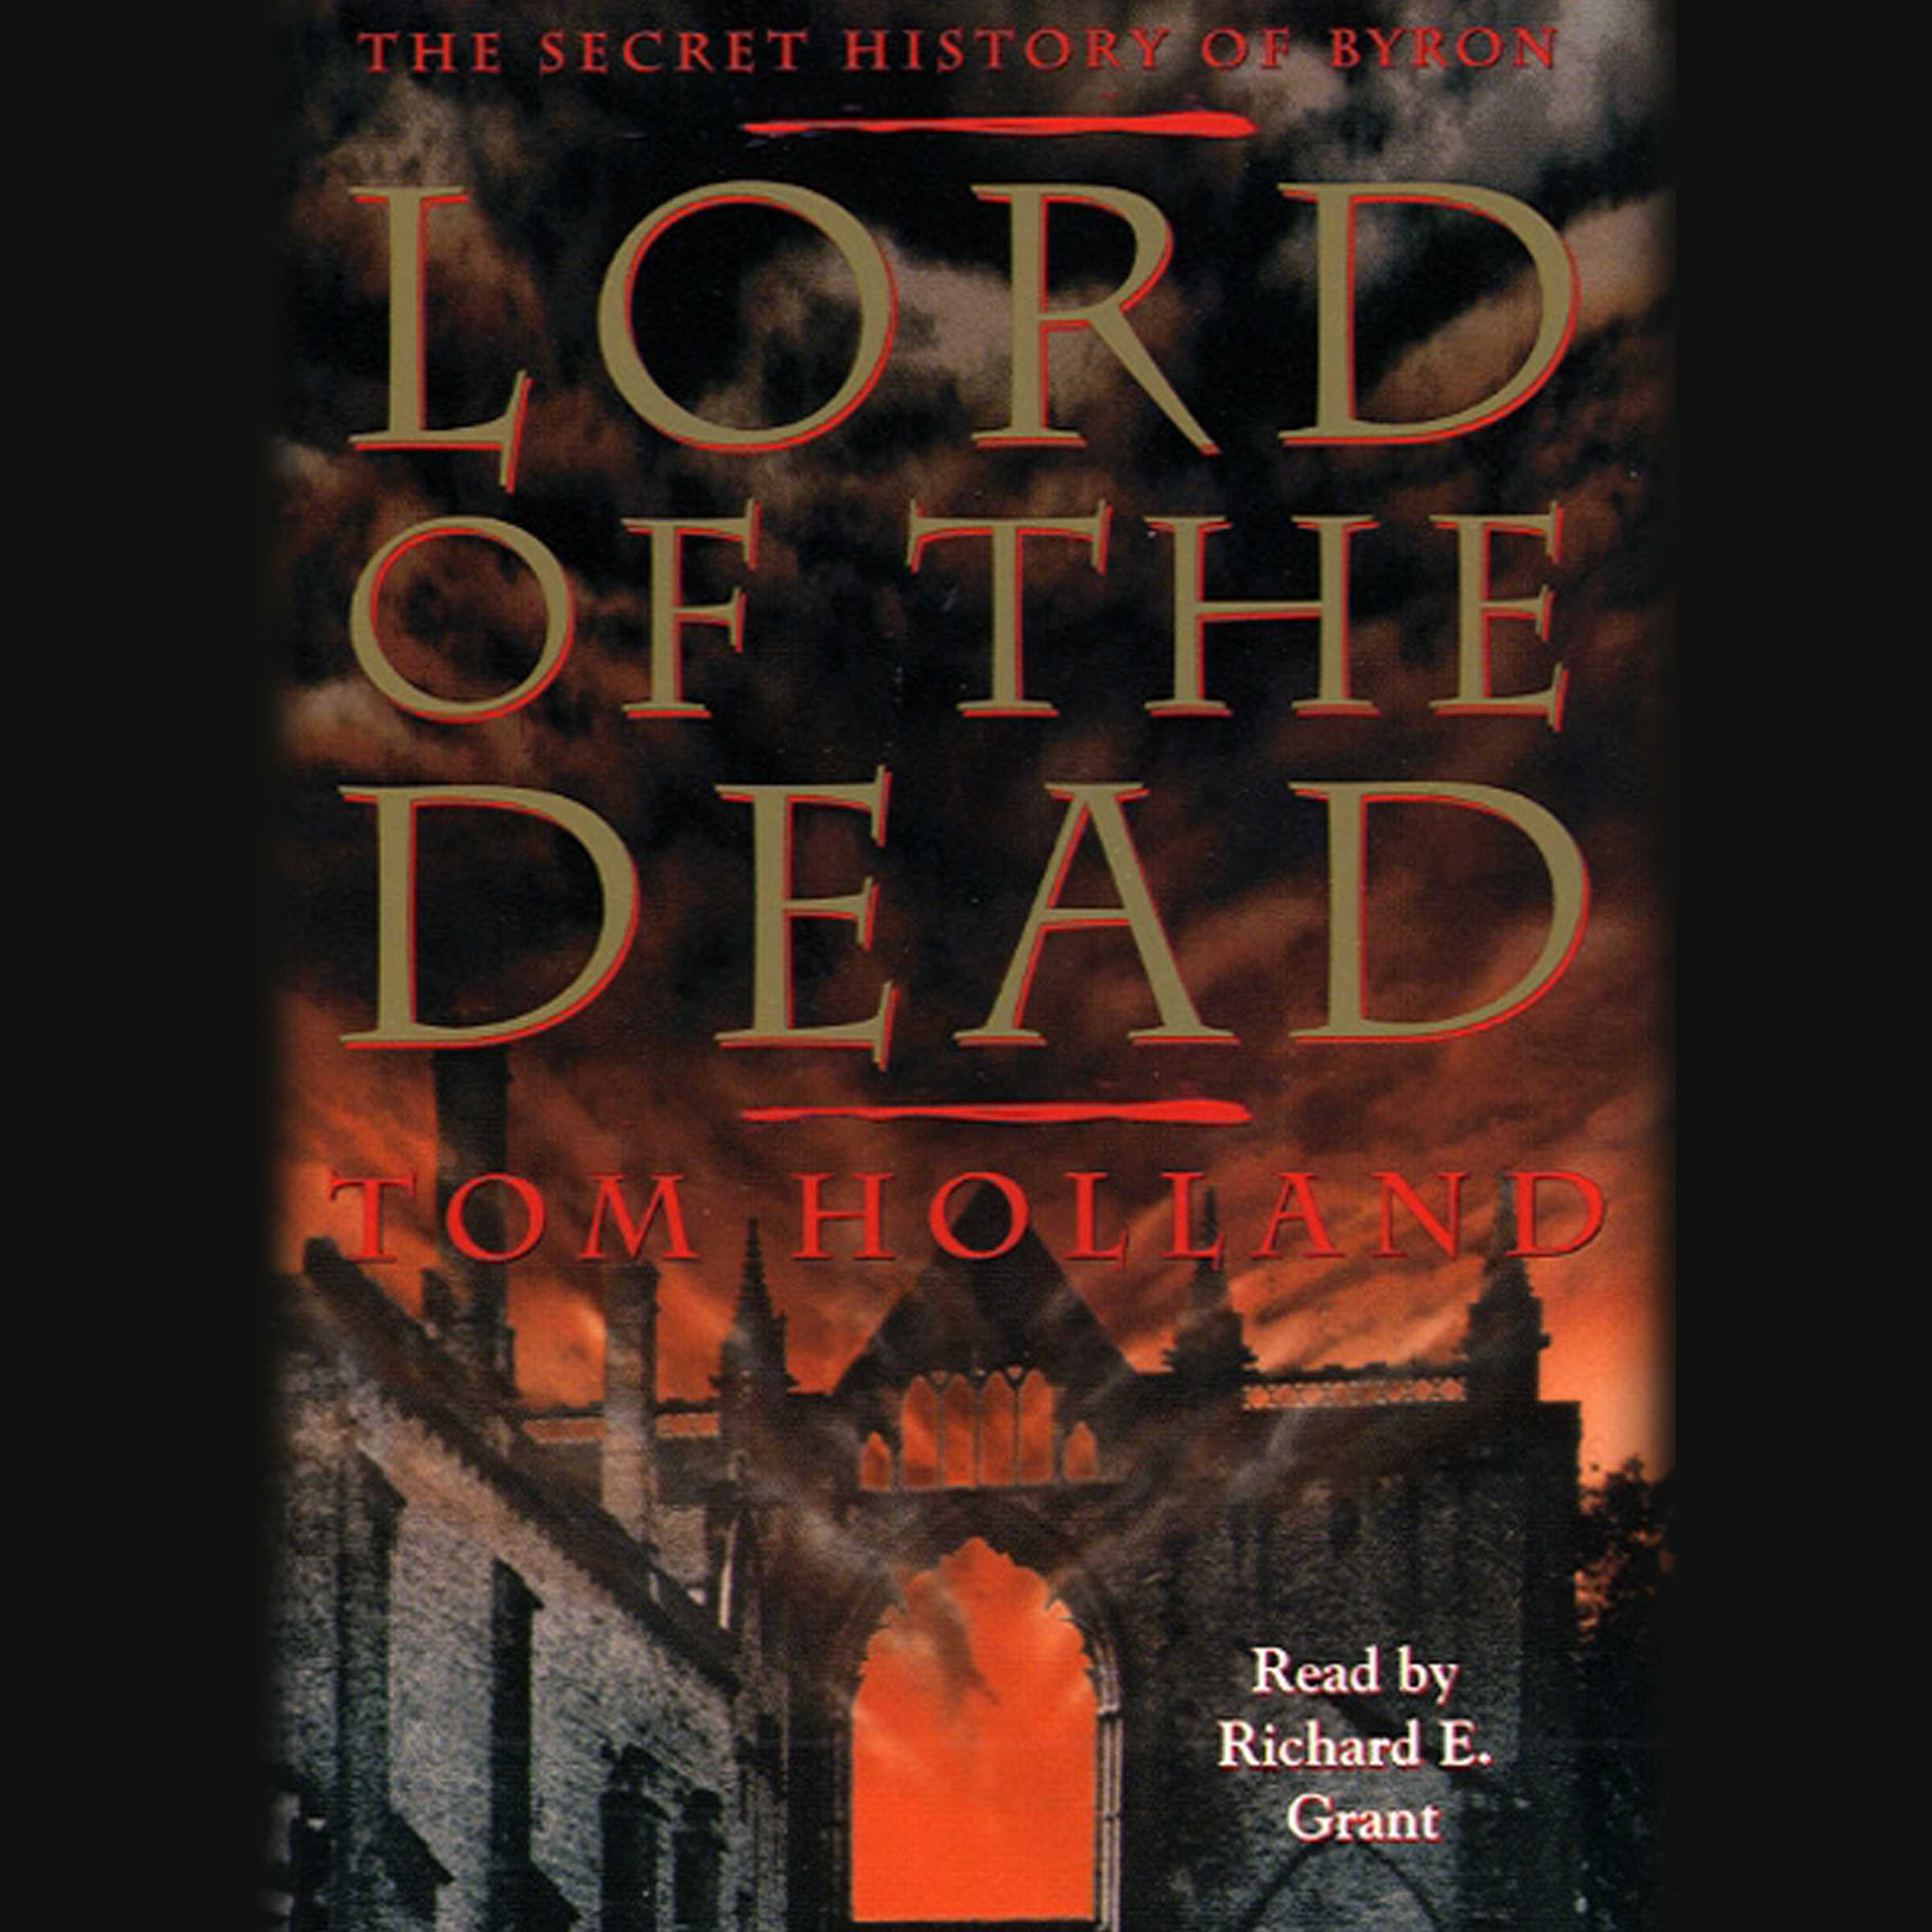 Lord of the dead the secret history of byron 9780743549790 hr